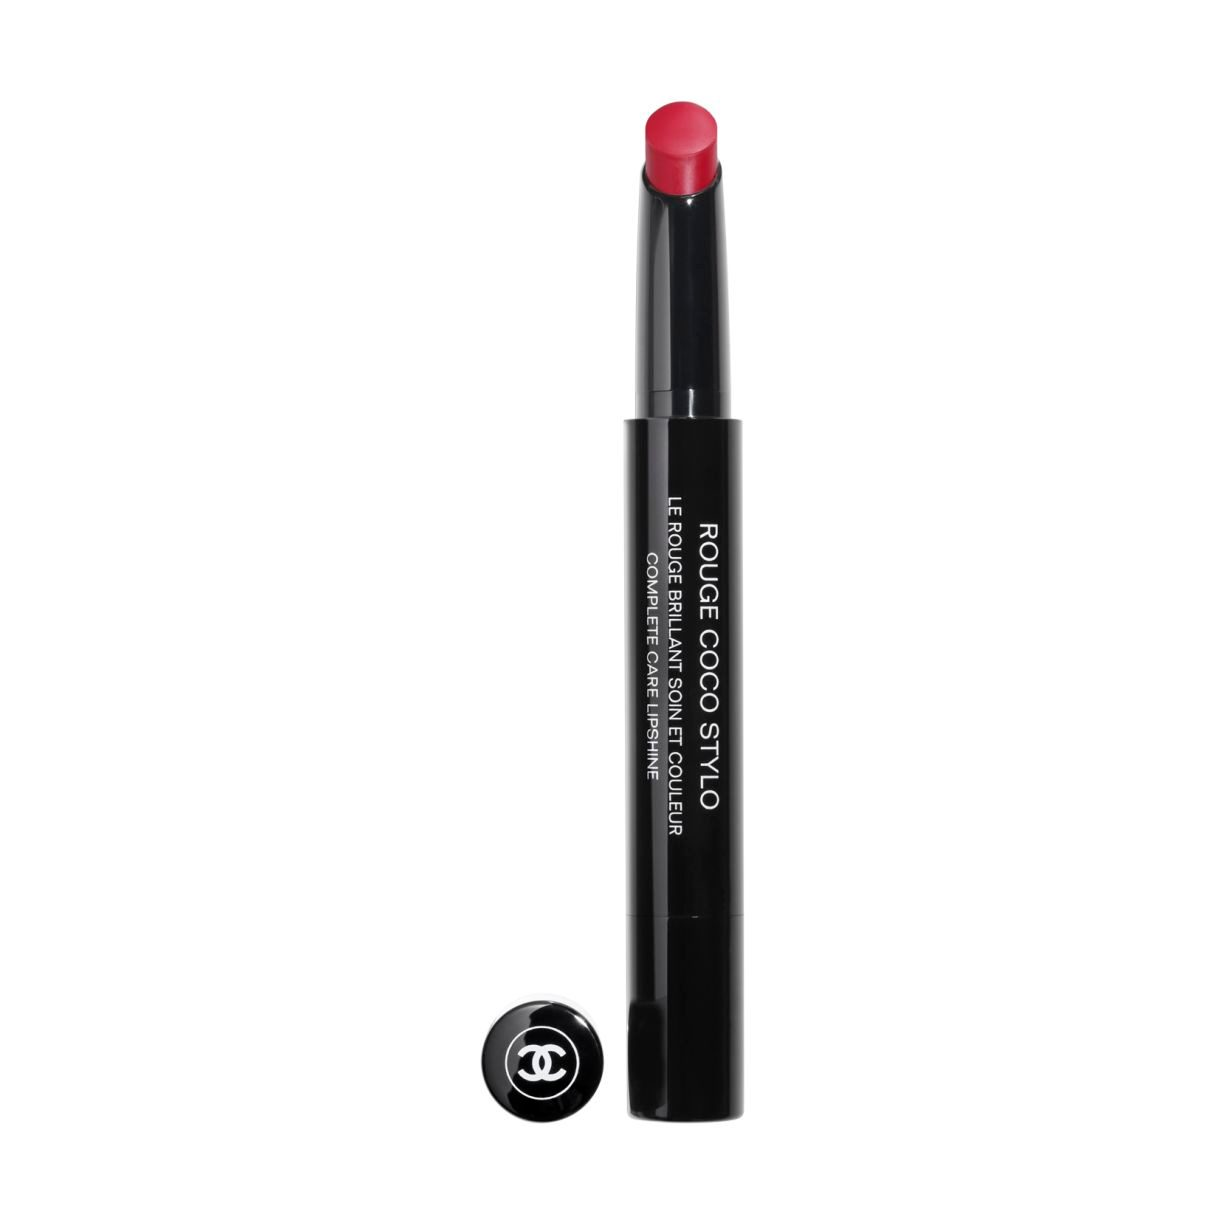 ROUGE COCO STYLO Lipstick 214 - MESSAGE